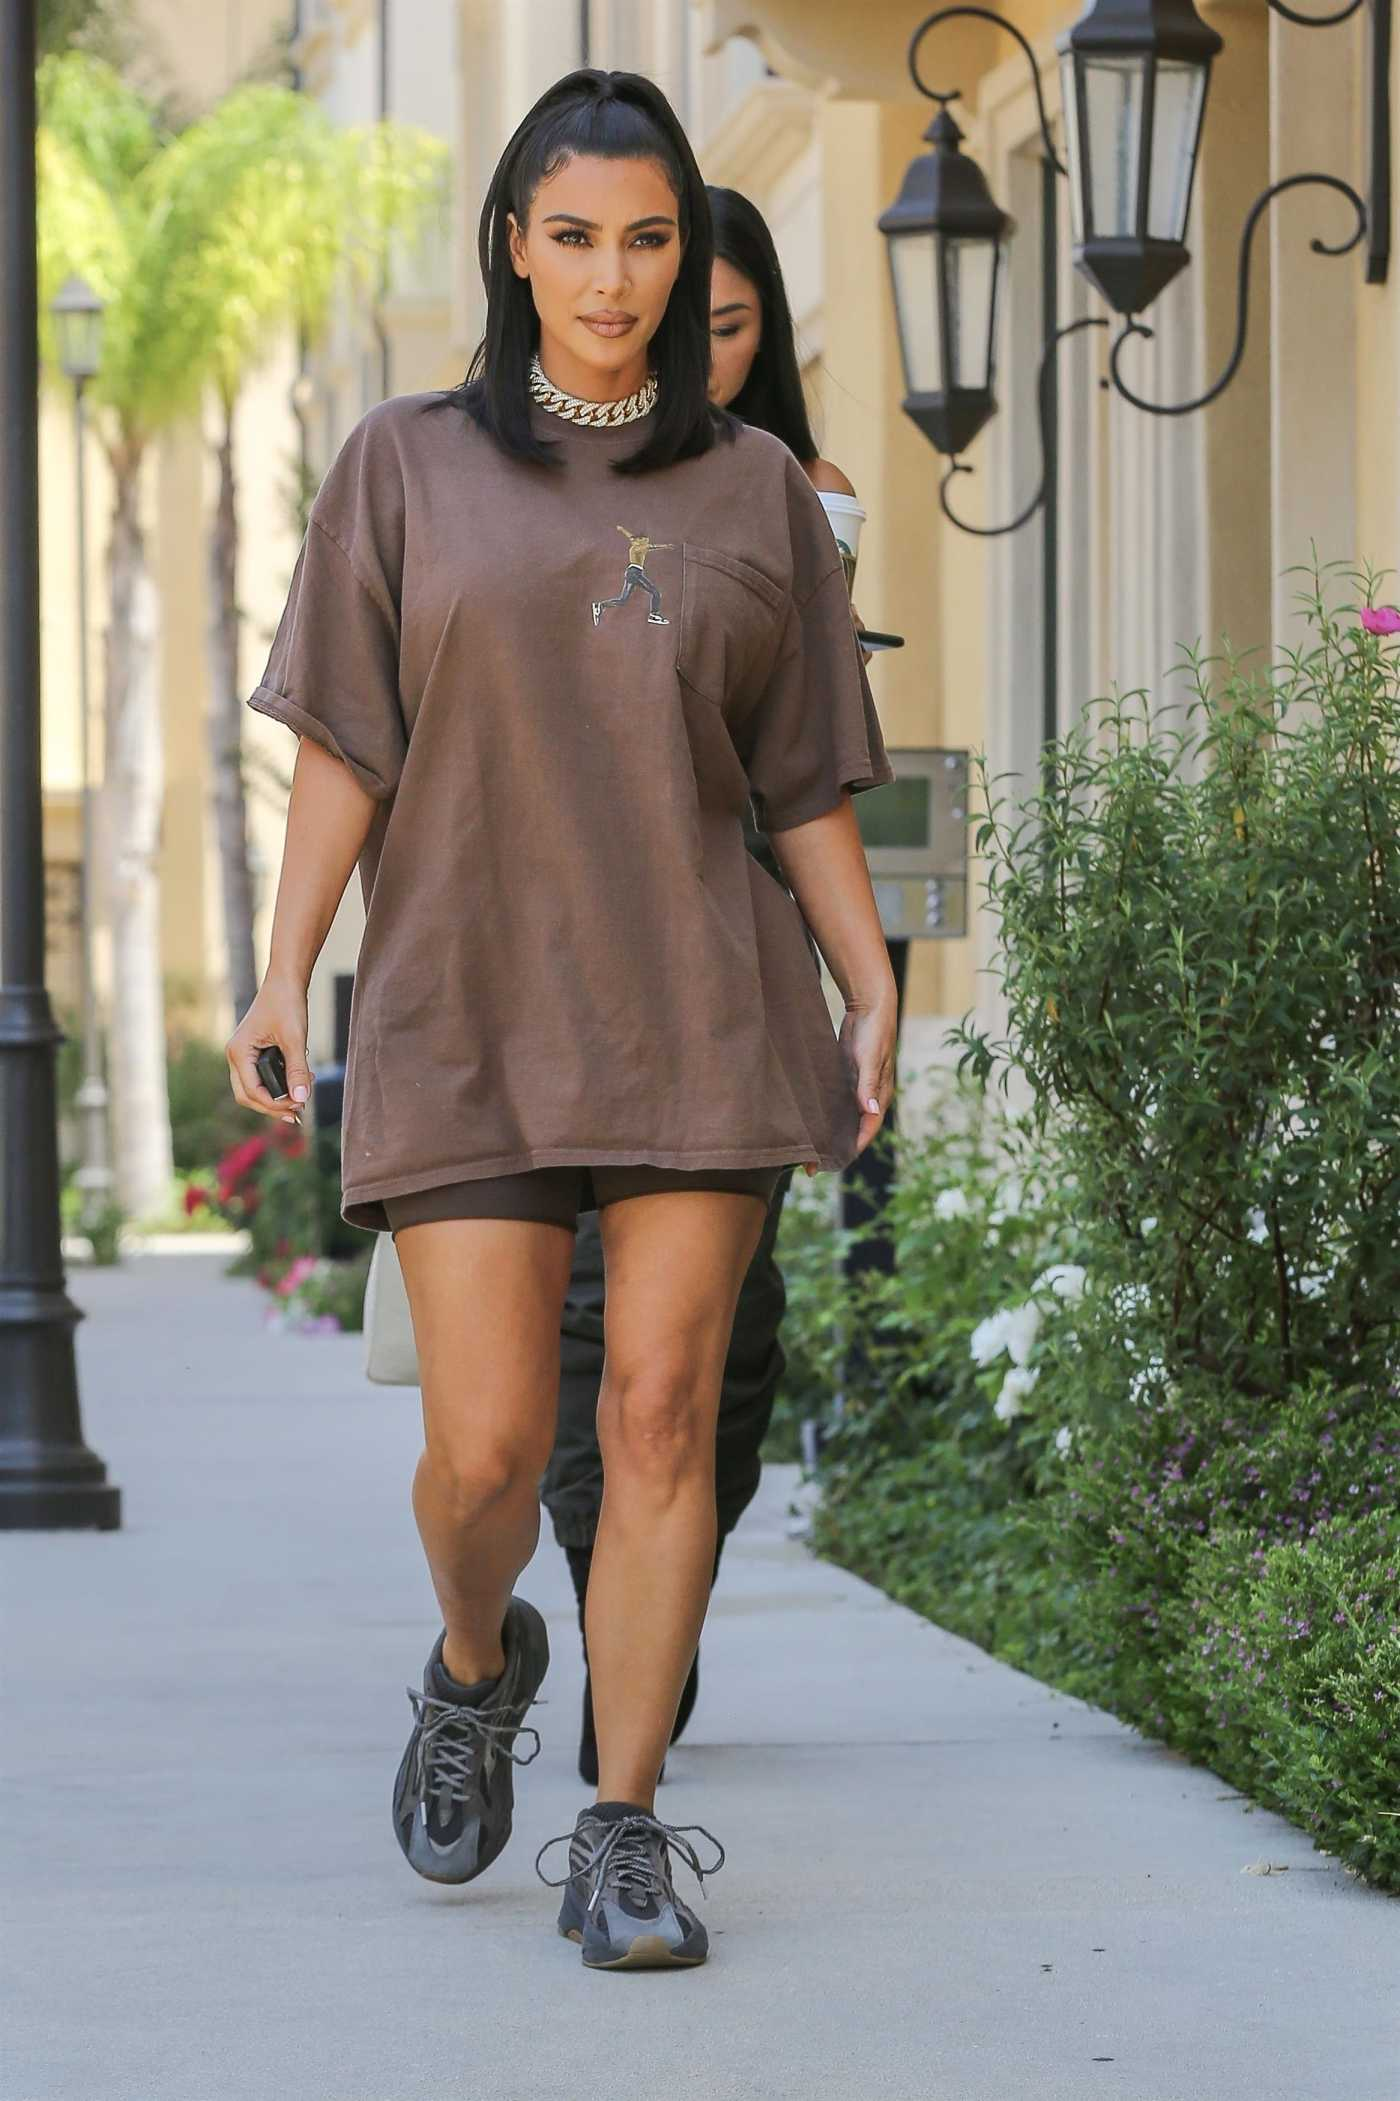 Kim Kardashian in a Brown Tee Leaves a Meeting in Calabasas 06/24/2019